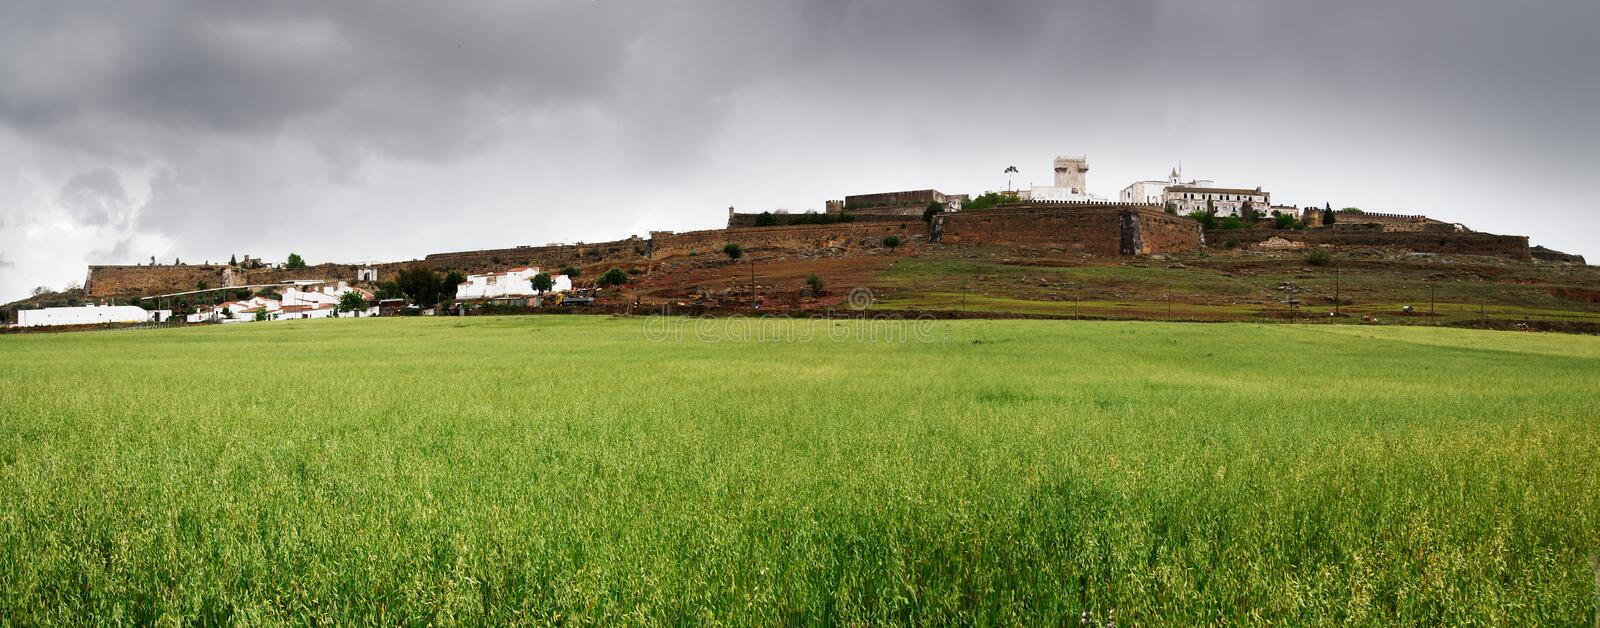 Download Estremoz wall stock image. Image of field, alentejo, ancient - 29010735